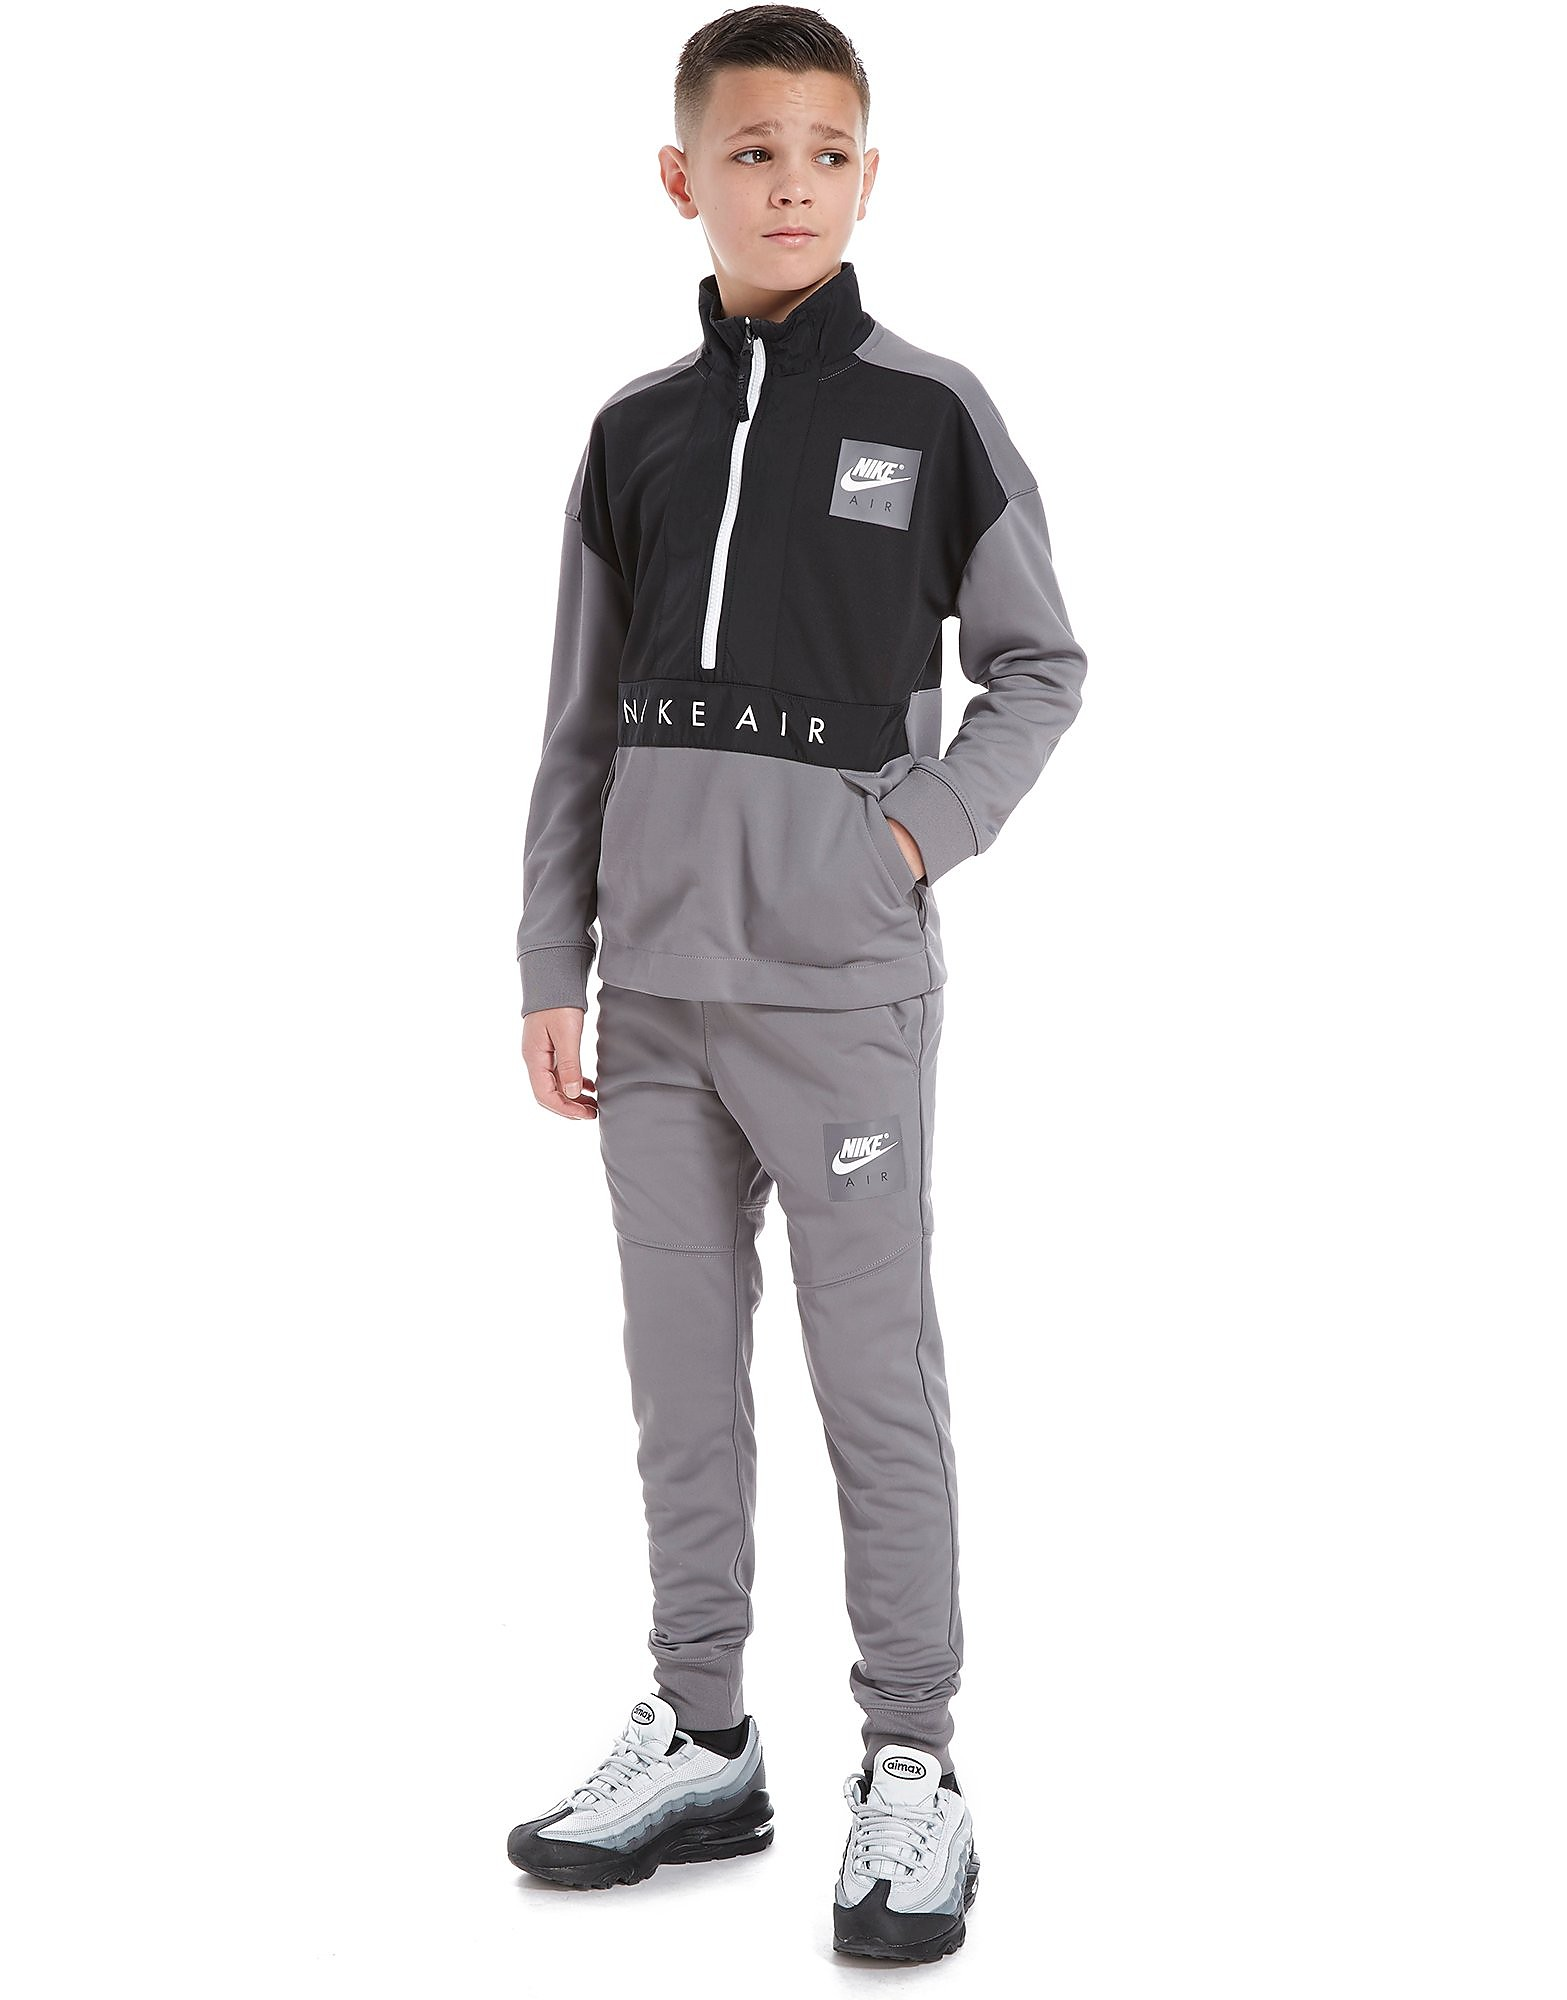 Nike Air 1/4 Zip Tracksuit Junior